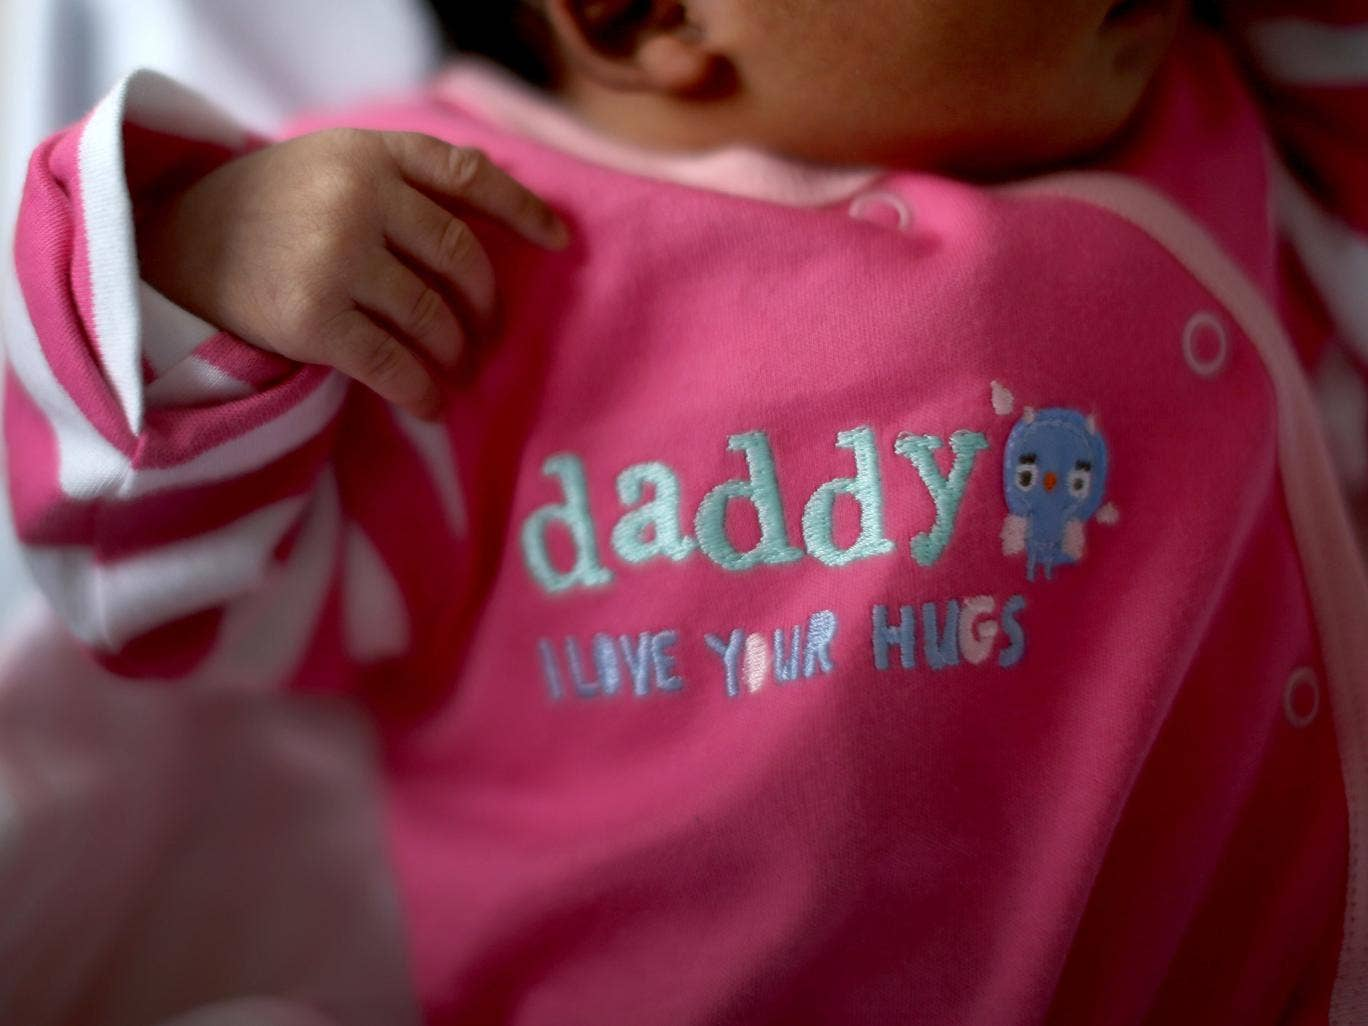 Designer babies: whether to design a child to your liking